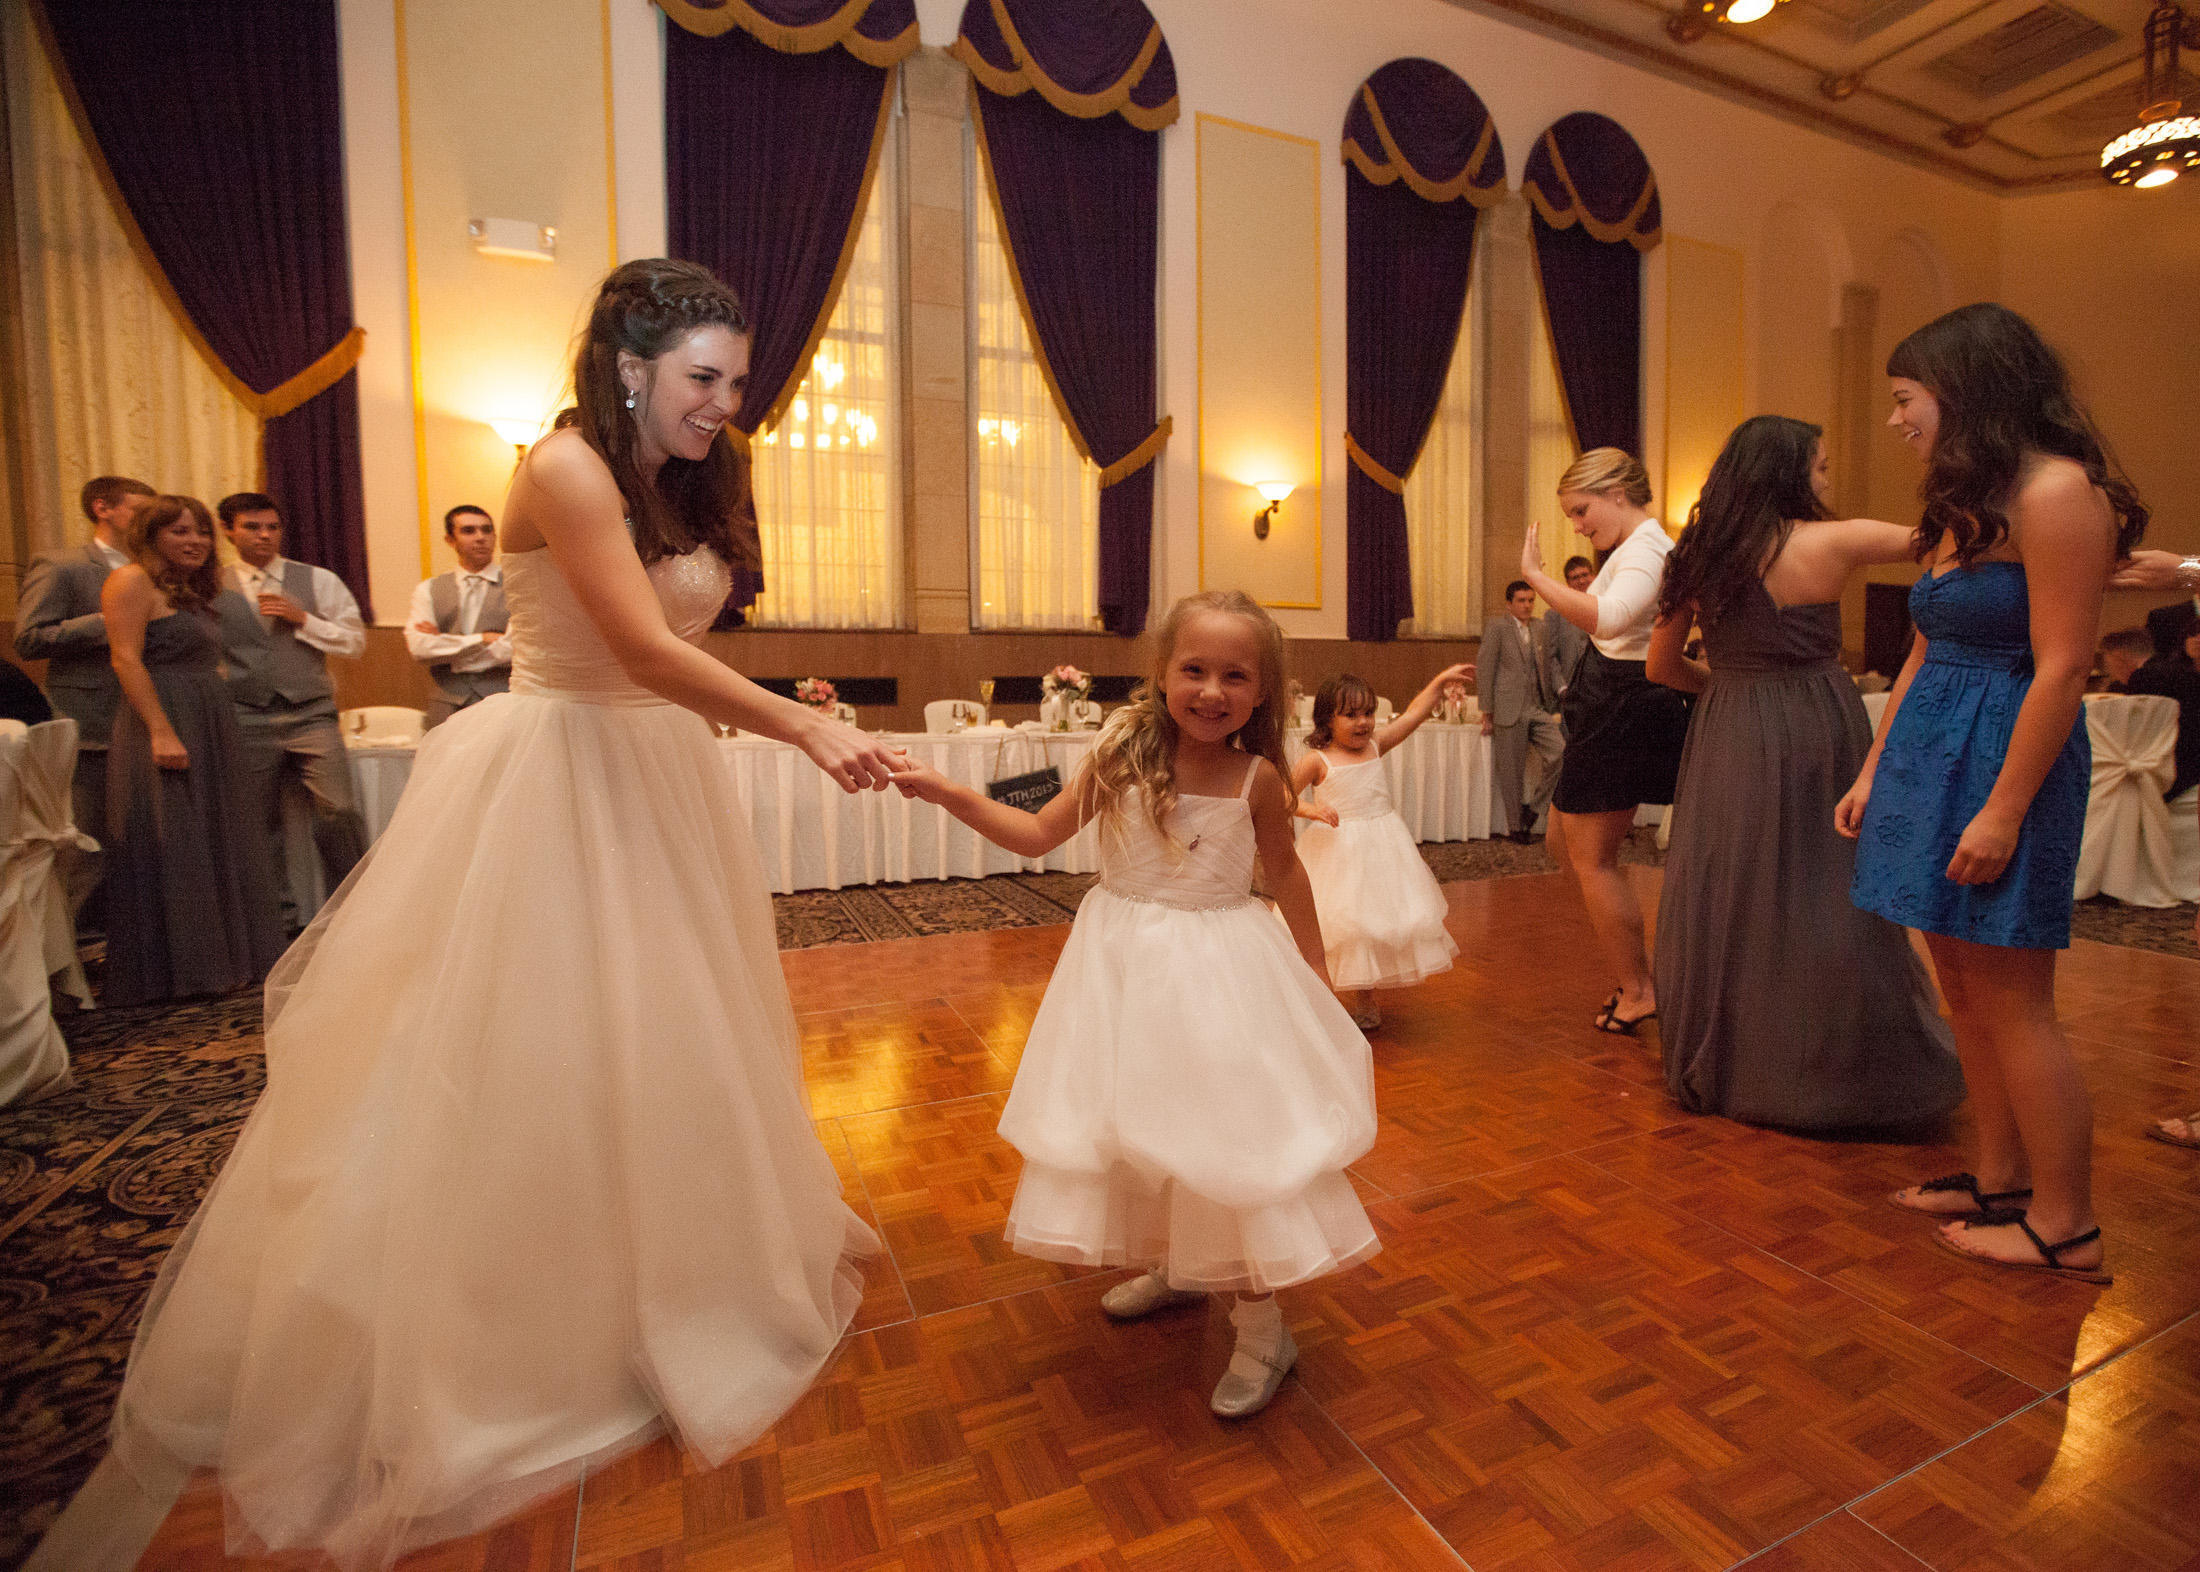 UofM_weddings_hull_melanie_reyes_069